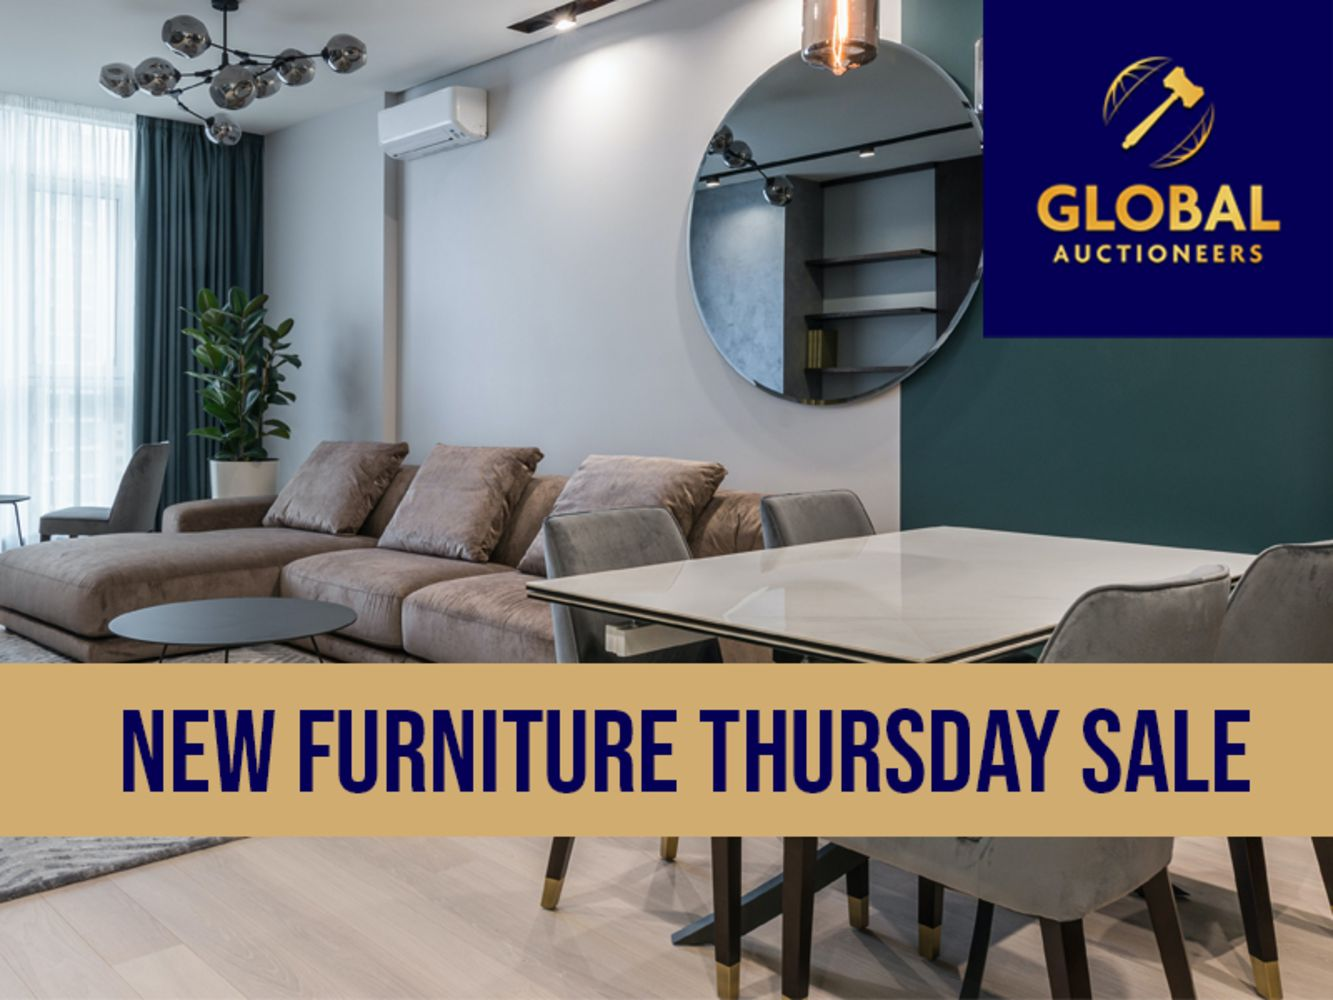 No Reserve - Furniture Thursday! 5th August 2021